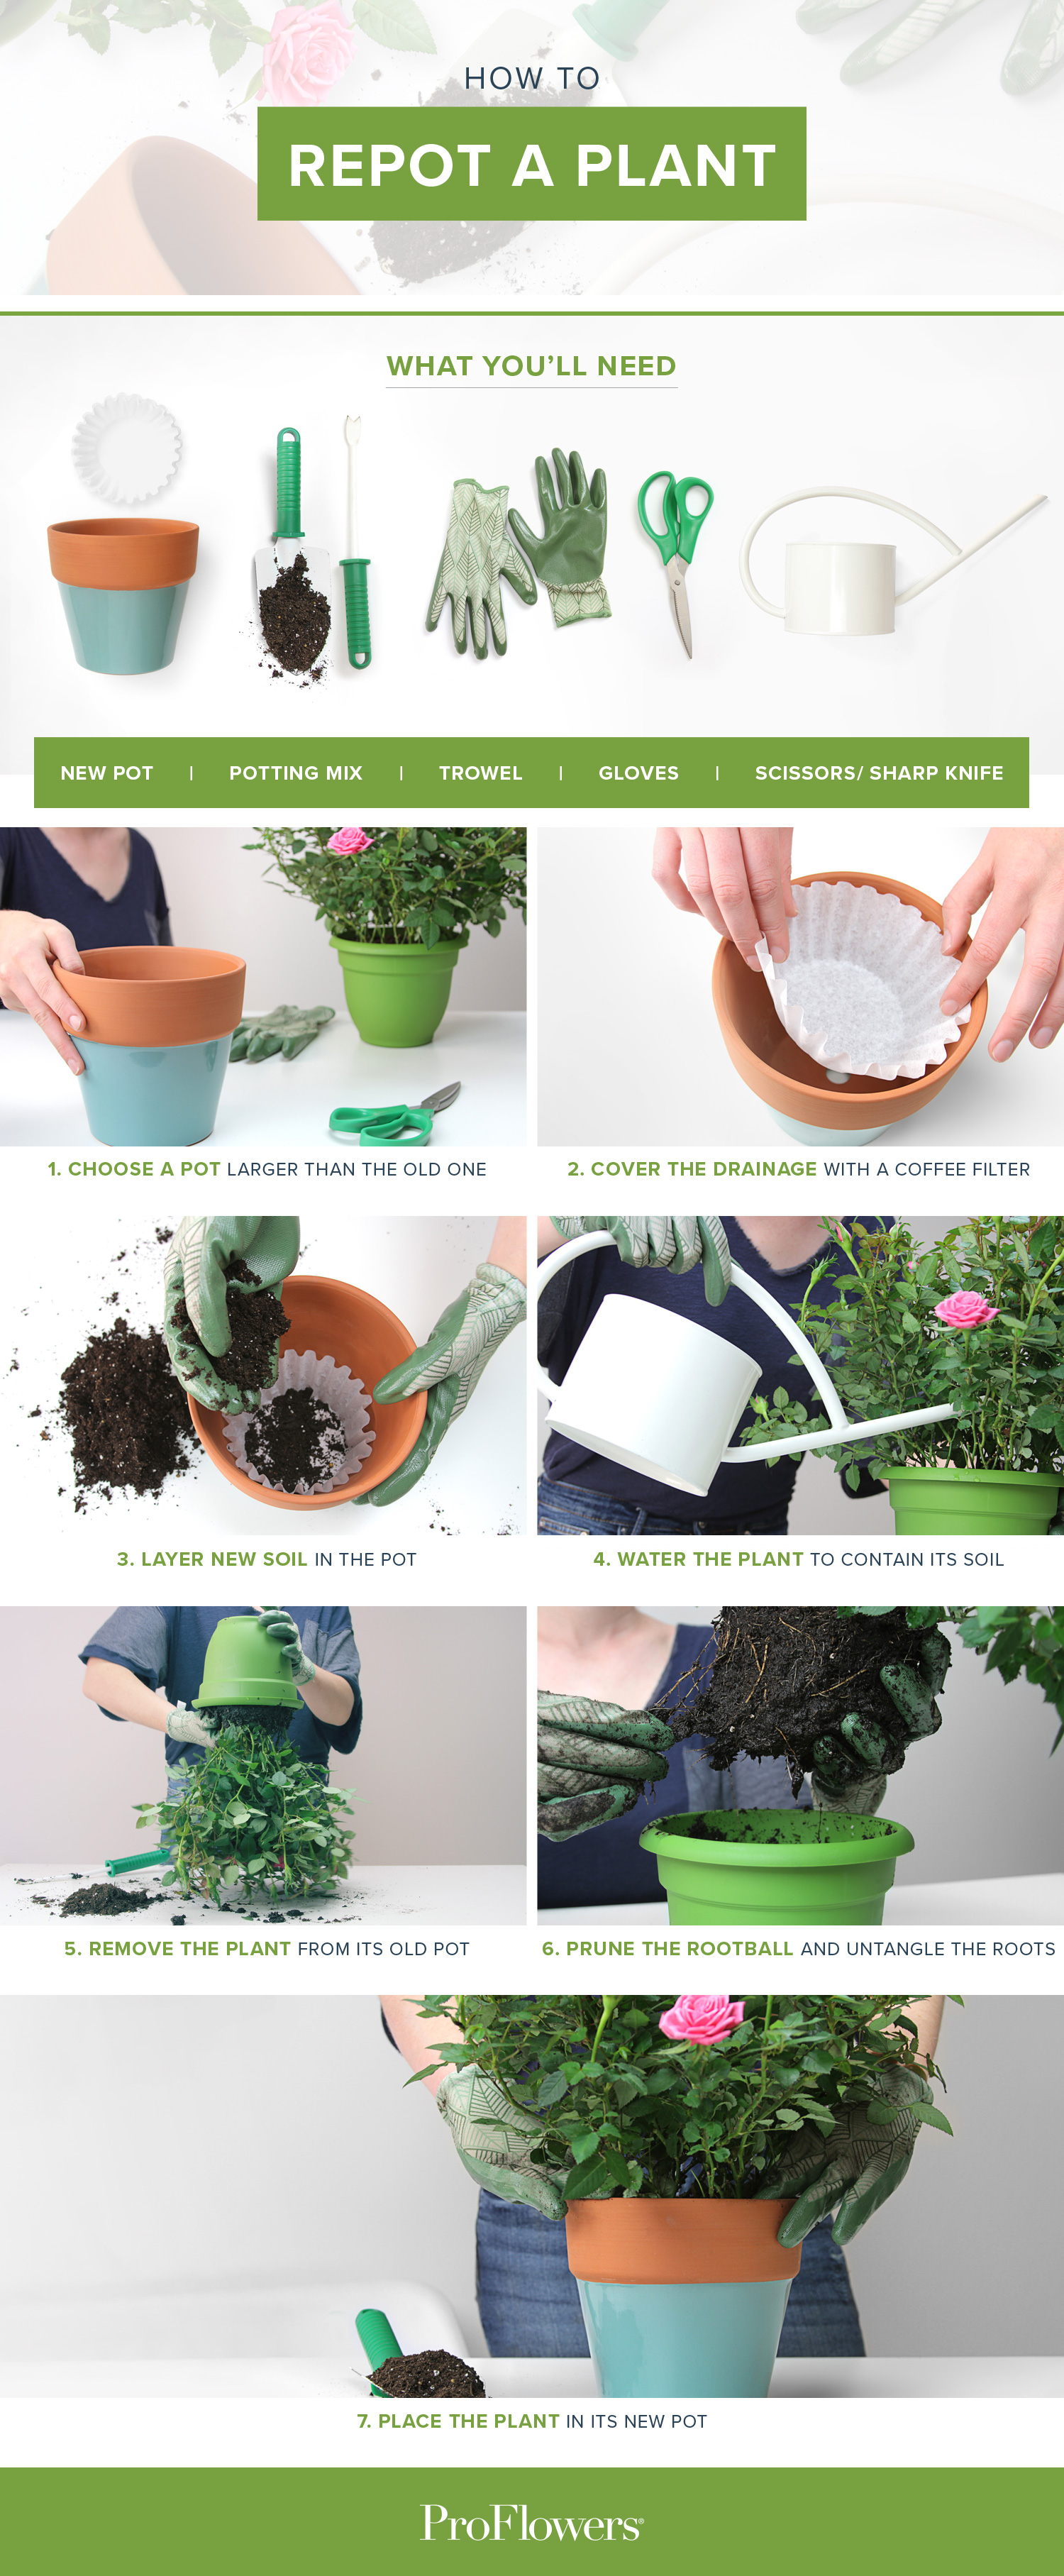 complete guide for how to repot a plant